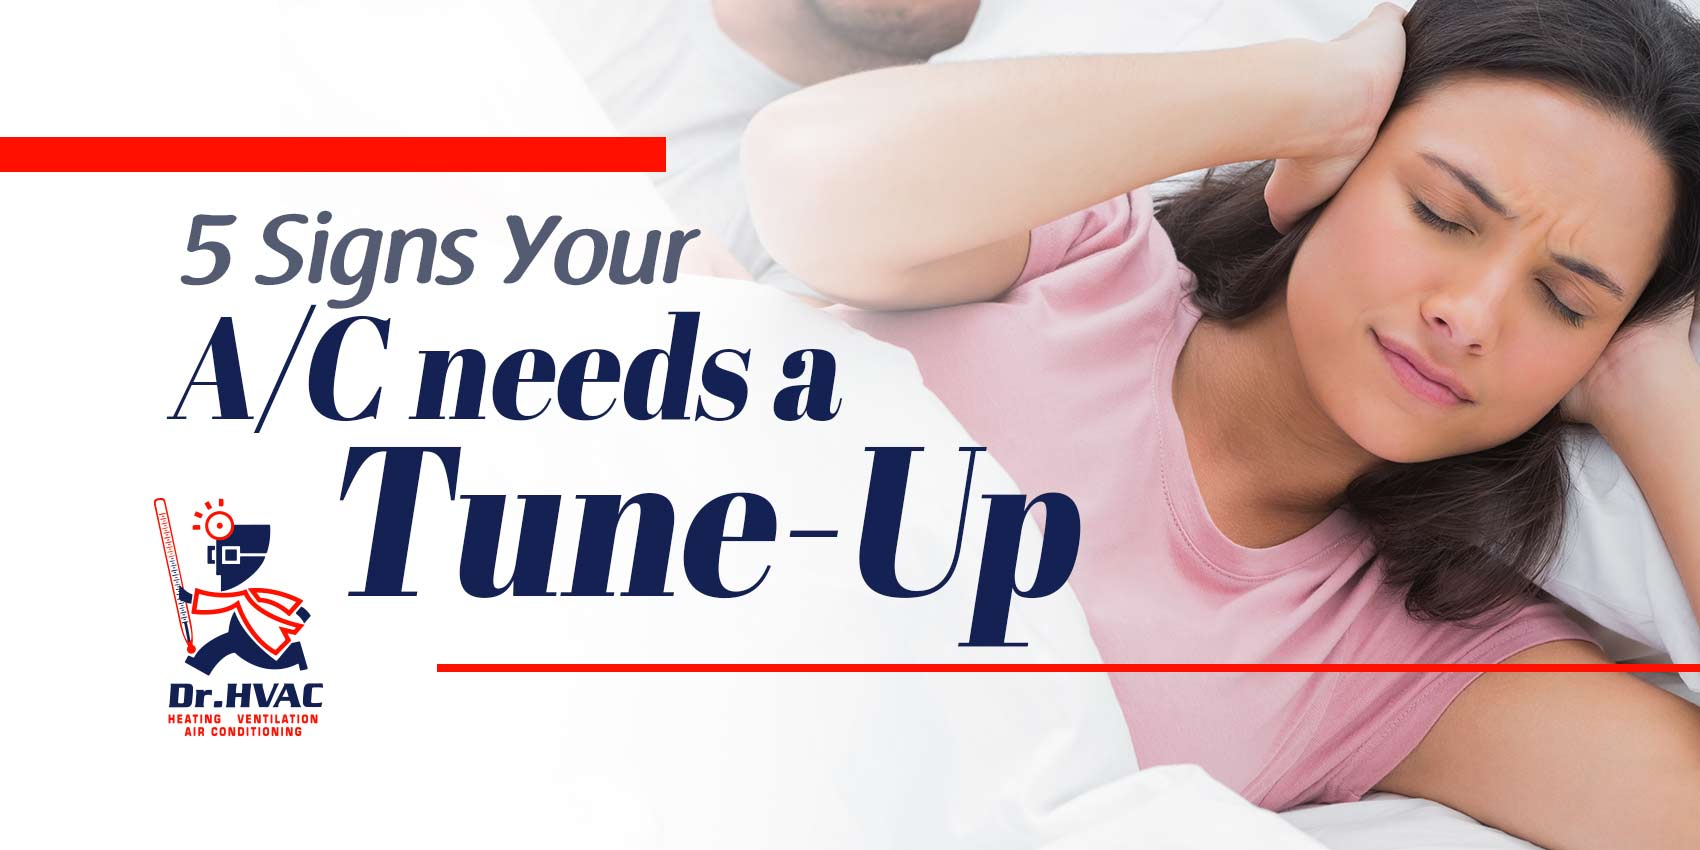 5 Signs Your A/C Needs a Tune-Up